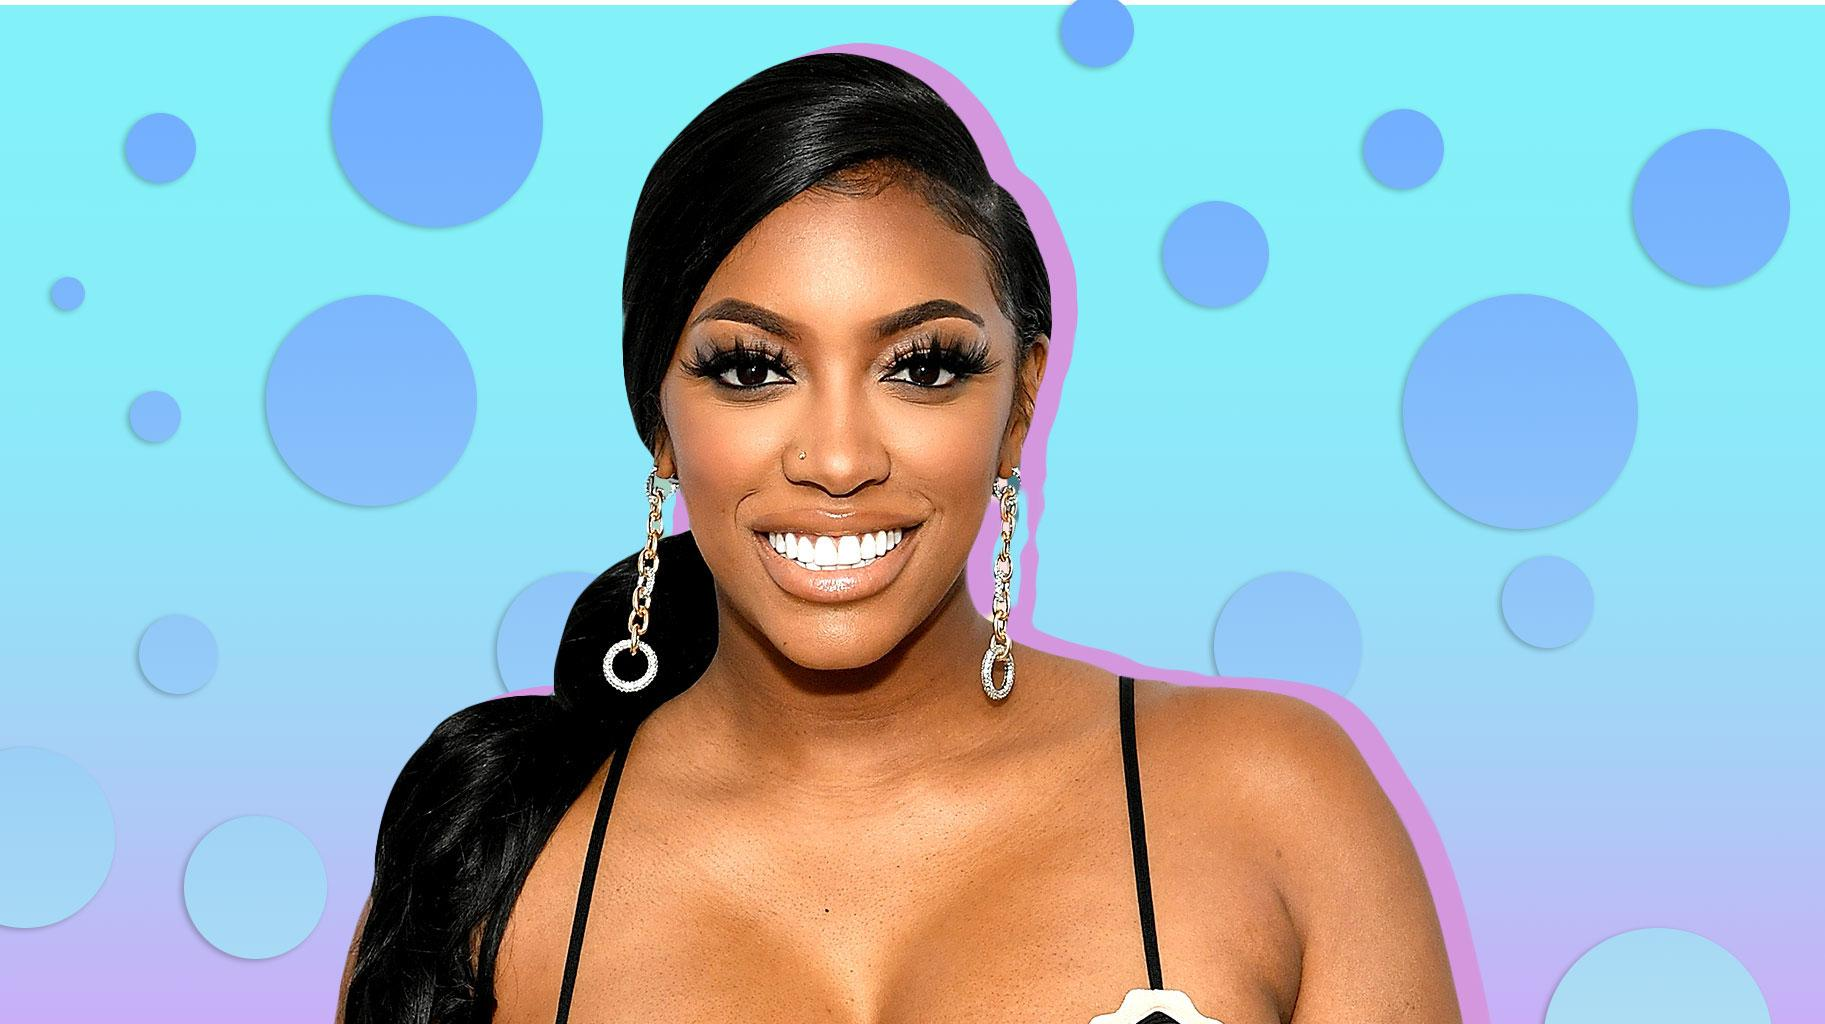 Porsha Williams Suggests That She's Healing And Starting Over Following The Drama With Dennis McKinley And The Cheating Accusations